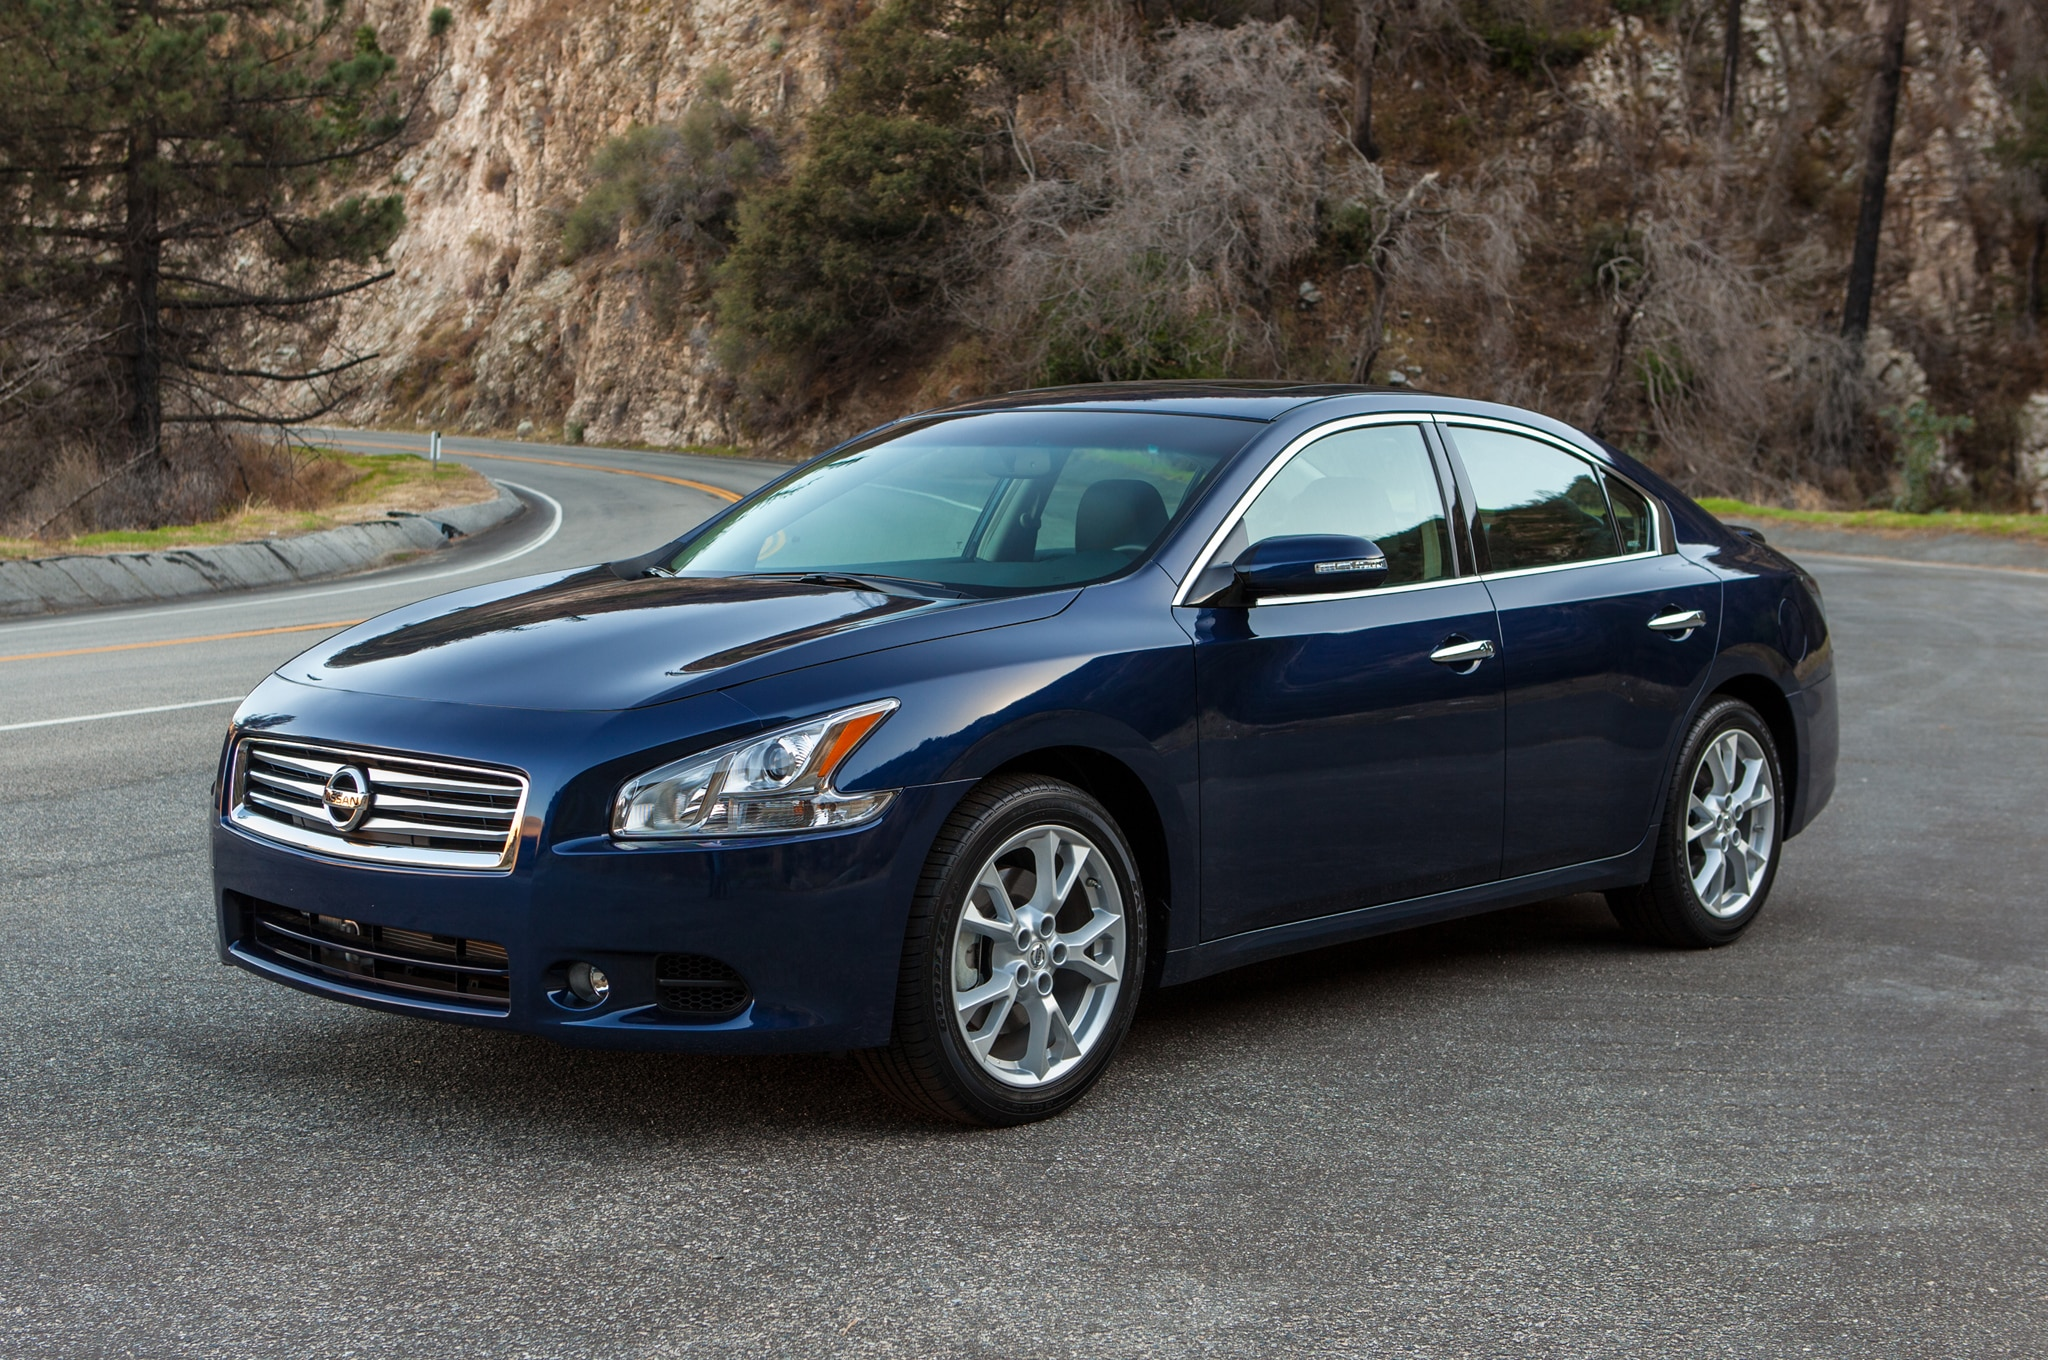 2014 Nissan Maxima Front Three Quarters1